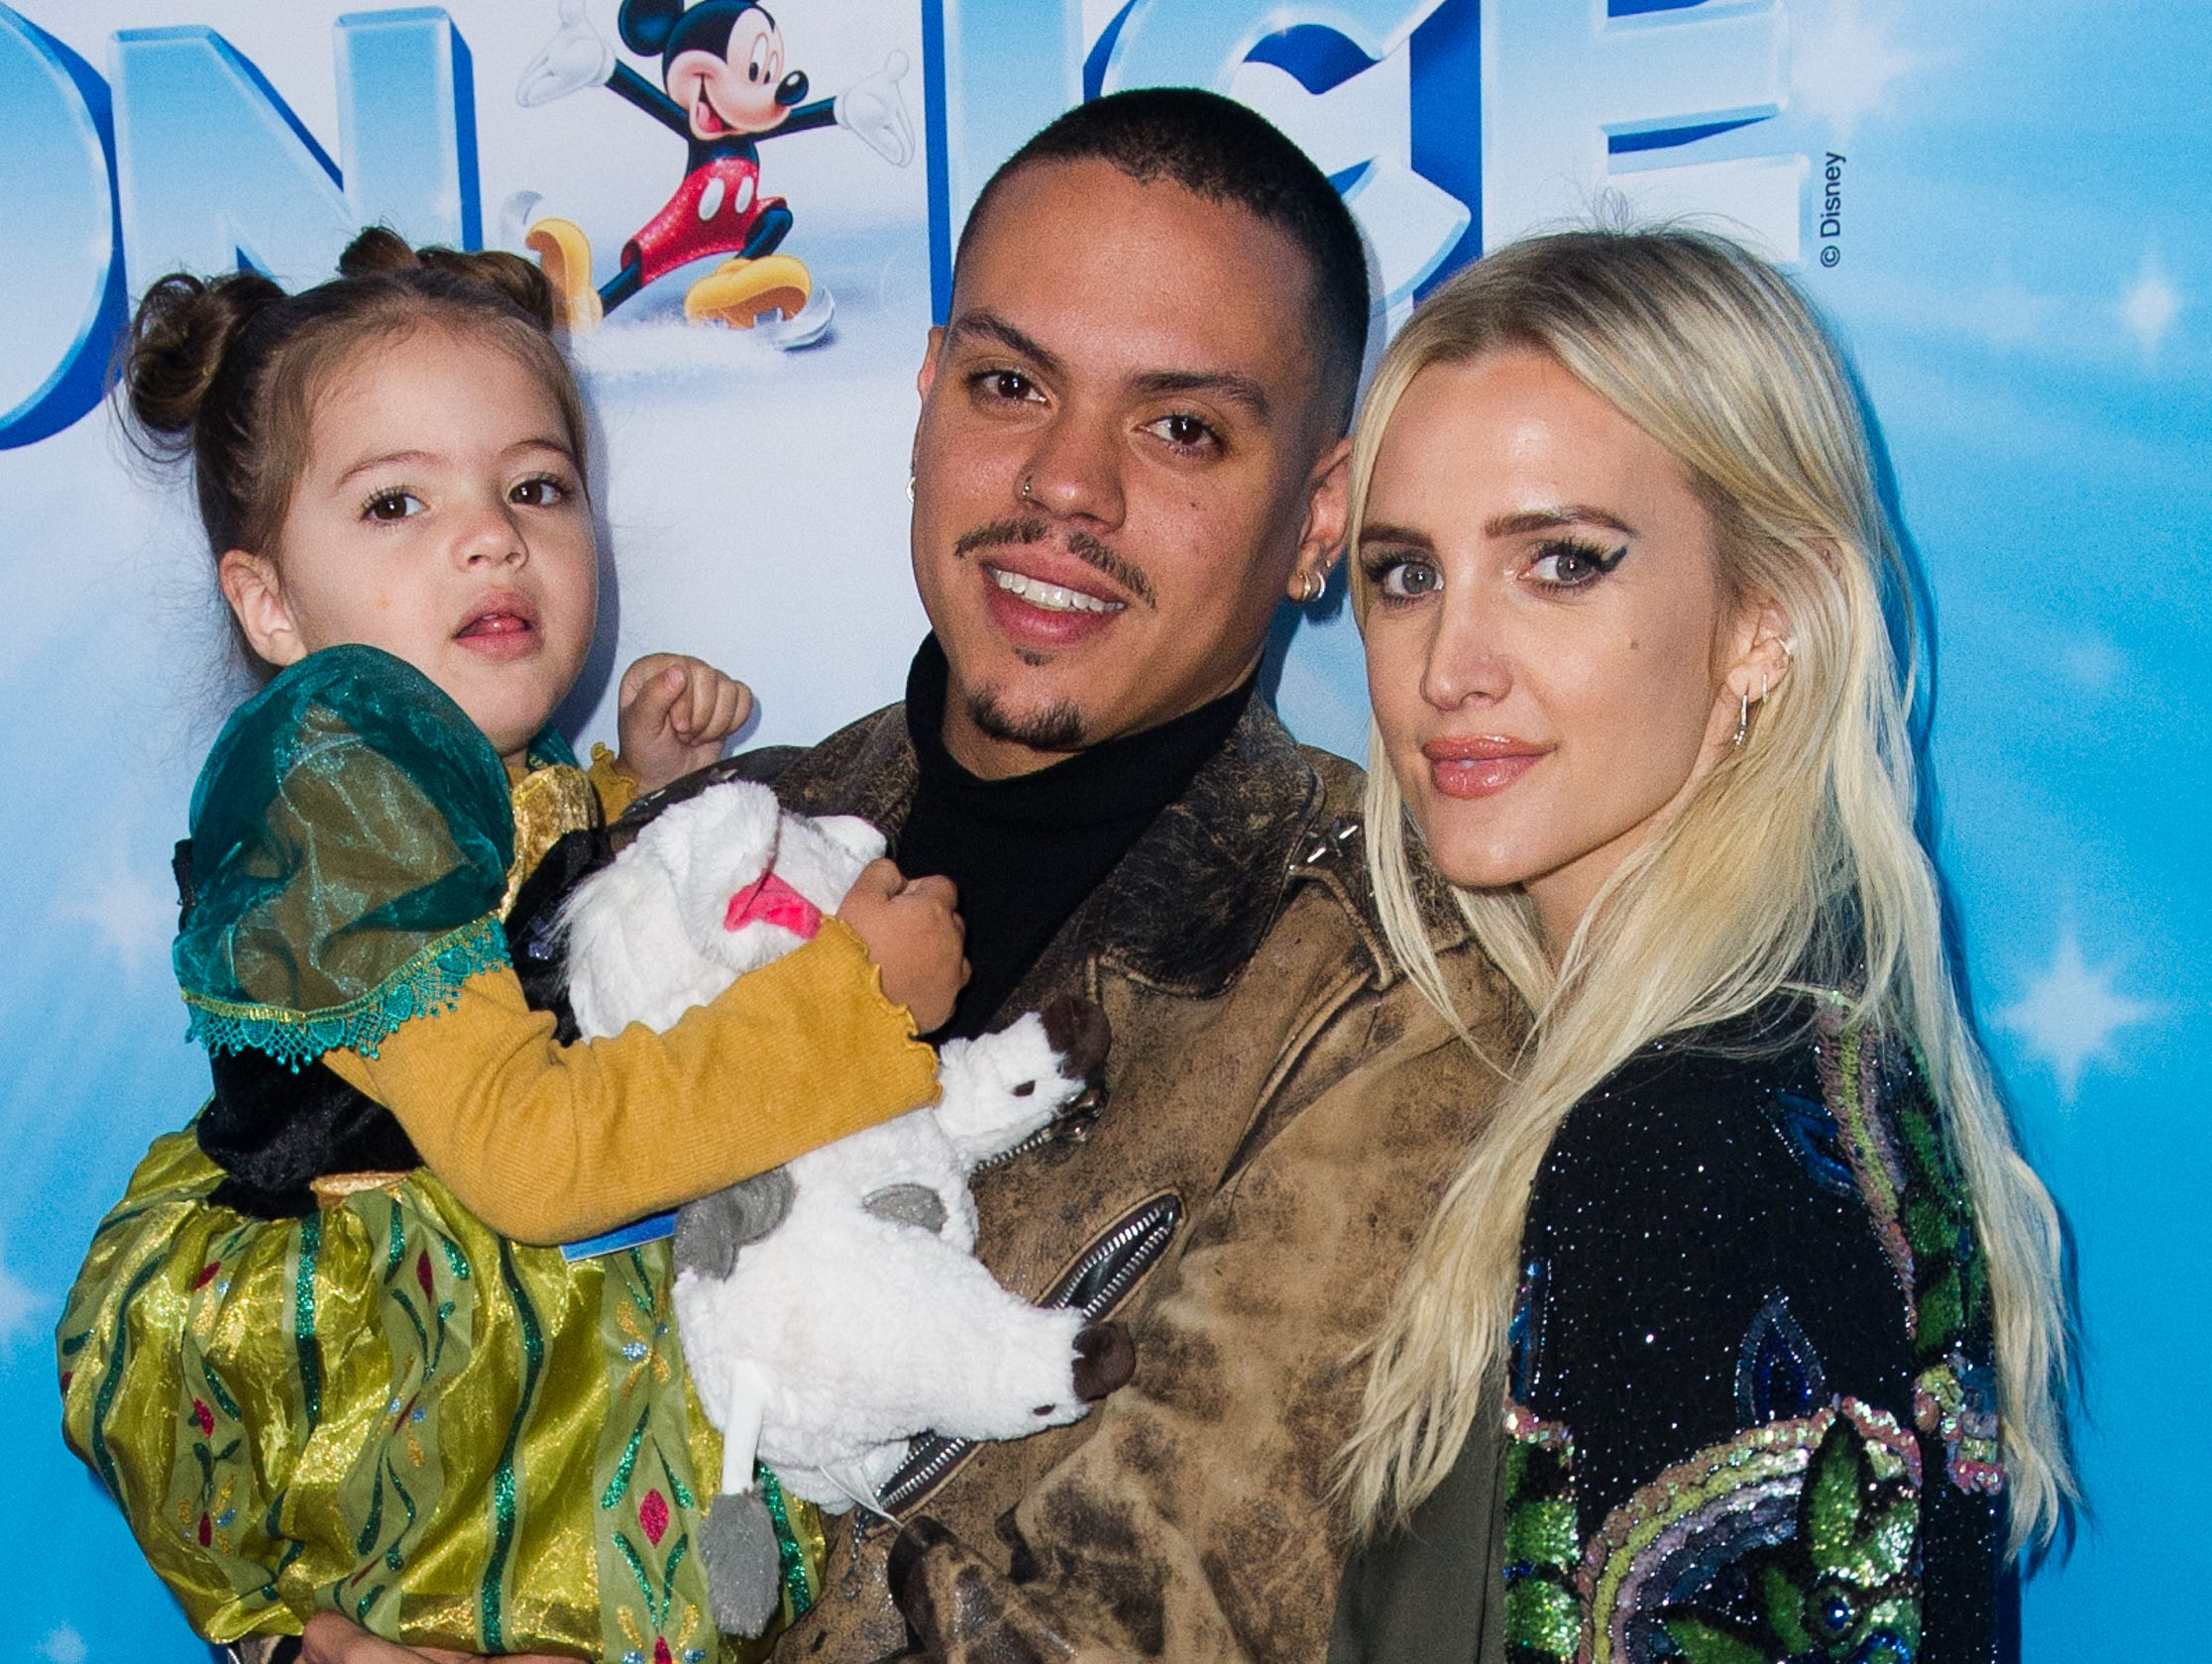 LOS ANGELES, CALIFORNIA - DECEMBER 14: Ashlee Simpson and Evan Ross with daughter Jagger attend Disney On Ice Presents 'Dare To Dream' at Staples Center on December 14, 2018 in Los Angeles, California. (Photo by Rachel Luna/Getty Images) ORG XMIT: 775266660 ORIG FILE ID: 1082700980